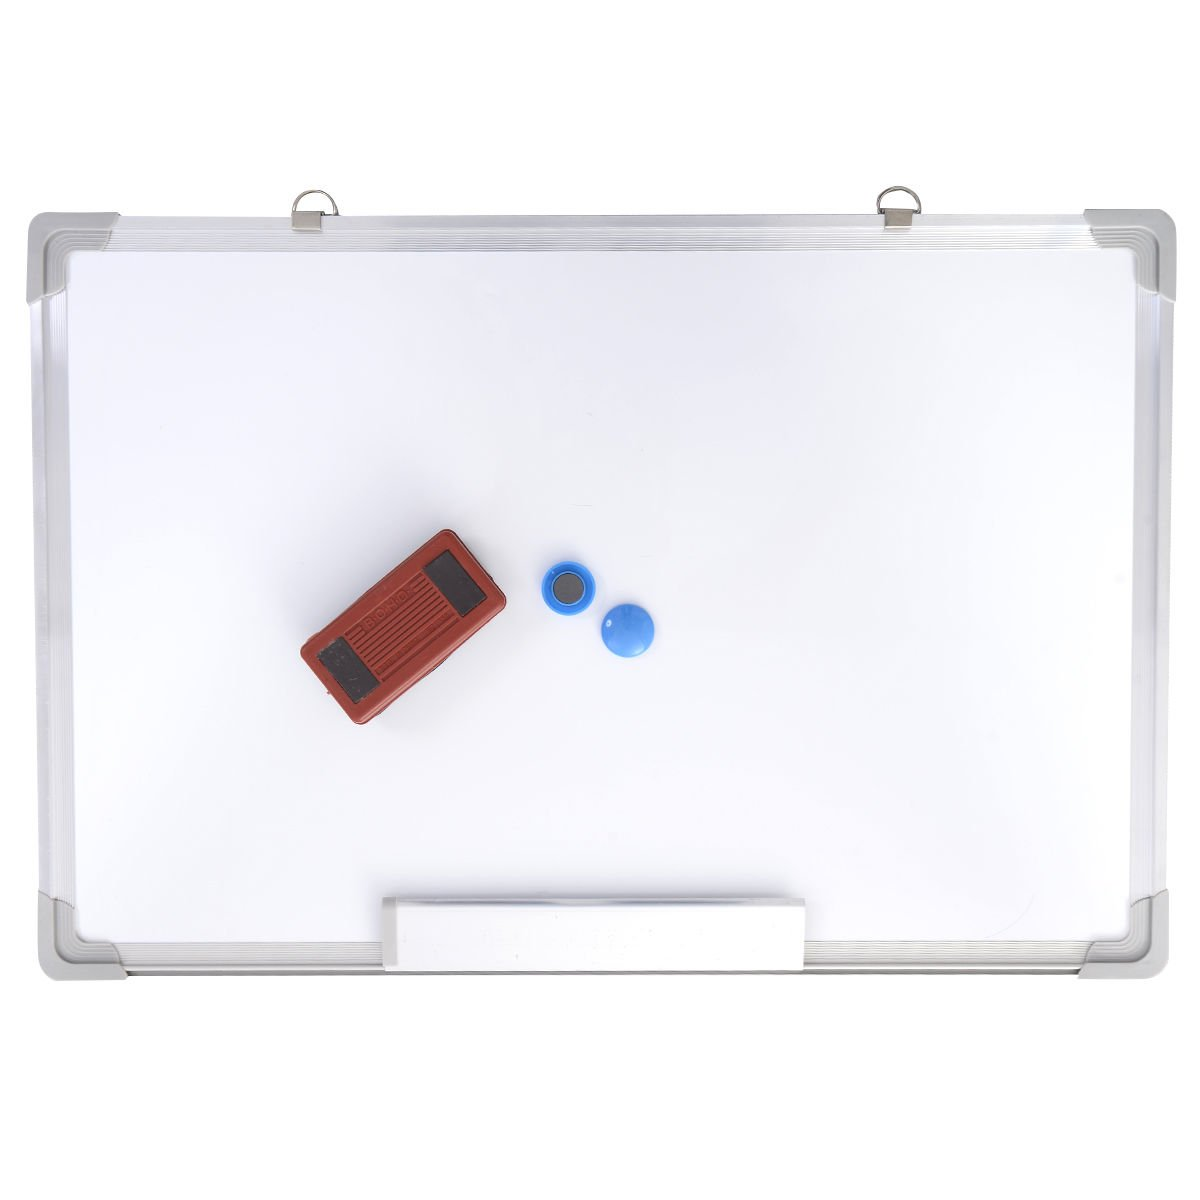 24x16 Single Side Magnetic Writing Whiteboard Dry Erase Board Office Eraser